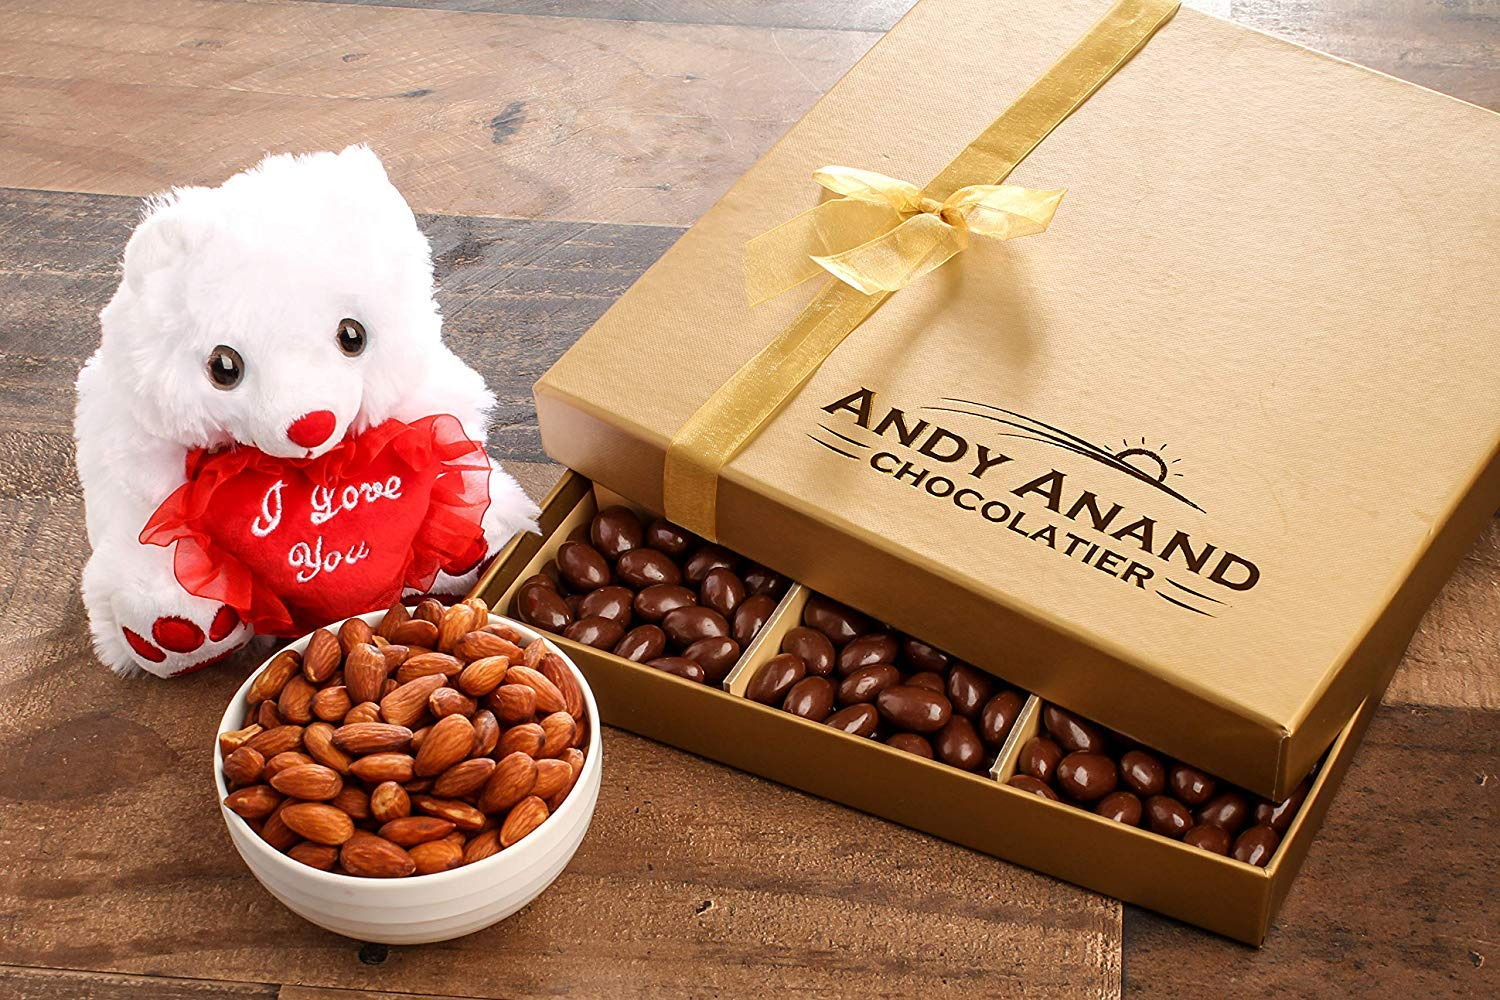 Andy Anand's Chocolate covered Almonds & I love You Teddy Bear in Gift Basket 1 lbs, Birthday, Valentine Day, Gourmet Christmas Holiday Food Gifts, Thanksgiving Halloween, Mothers day, Get Well Basket